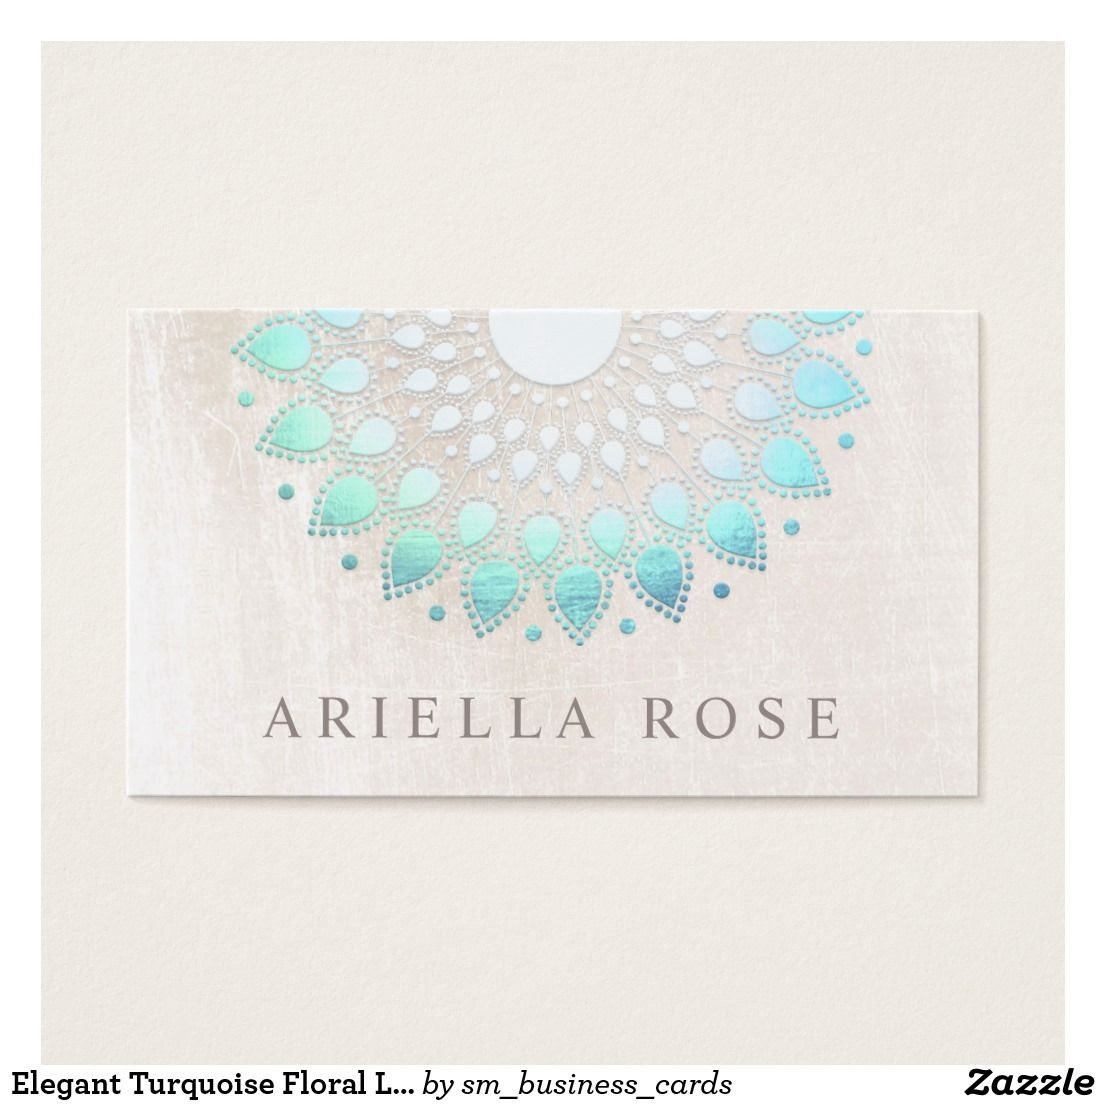 Elegant Turquoise Floral Lotus White Marble Business Card - Chic ...